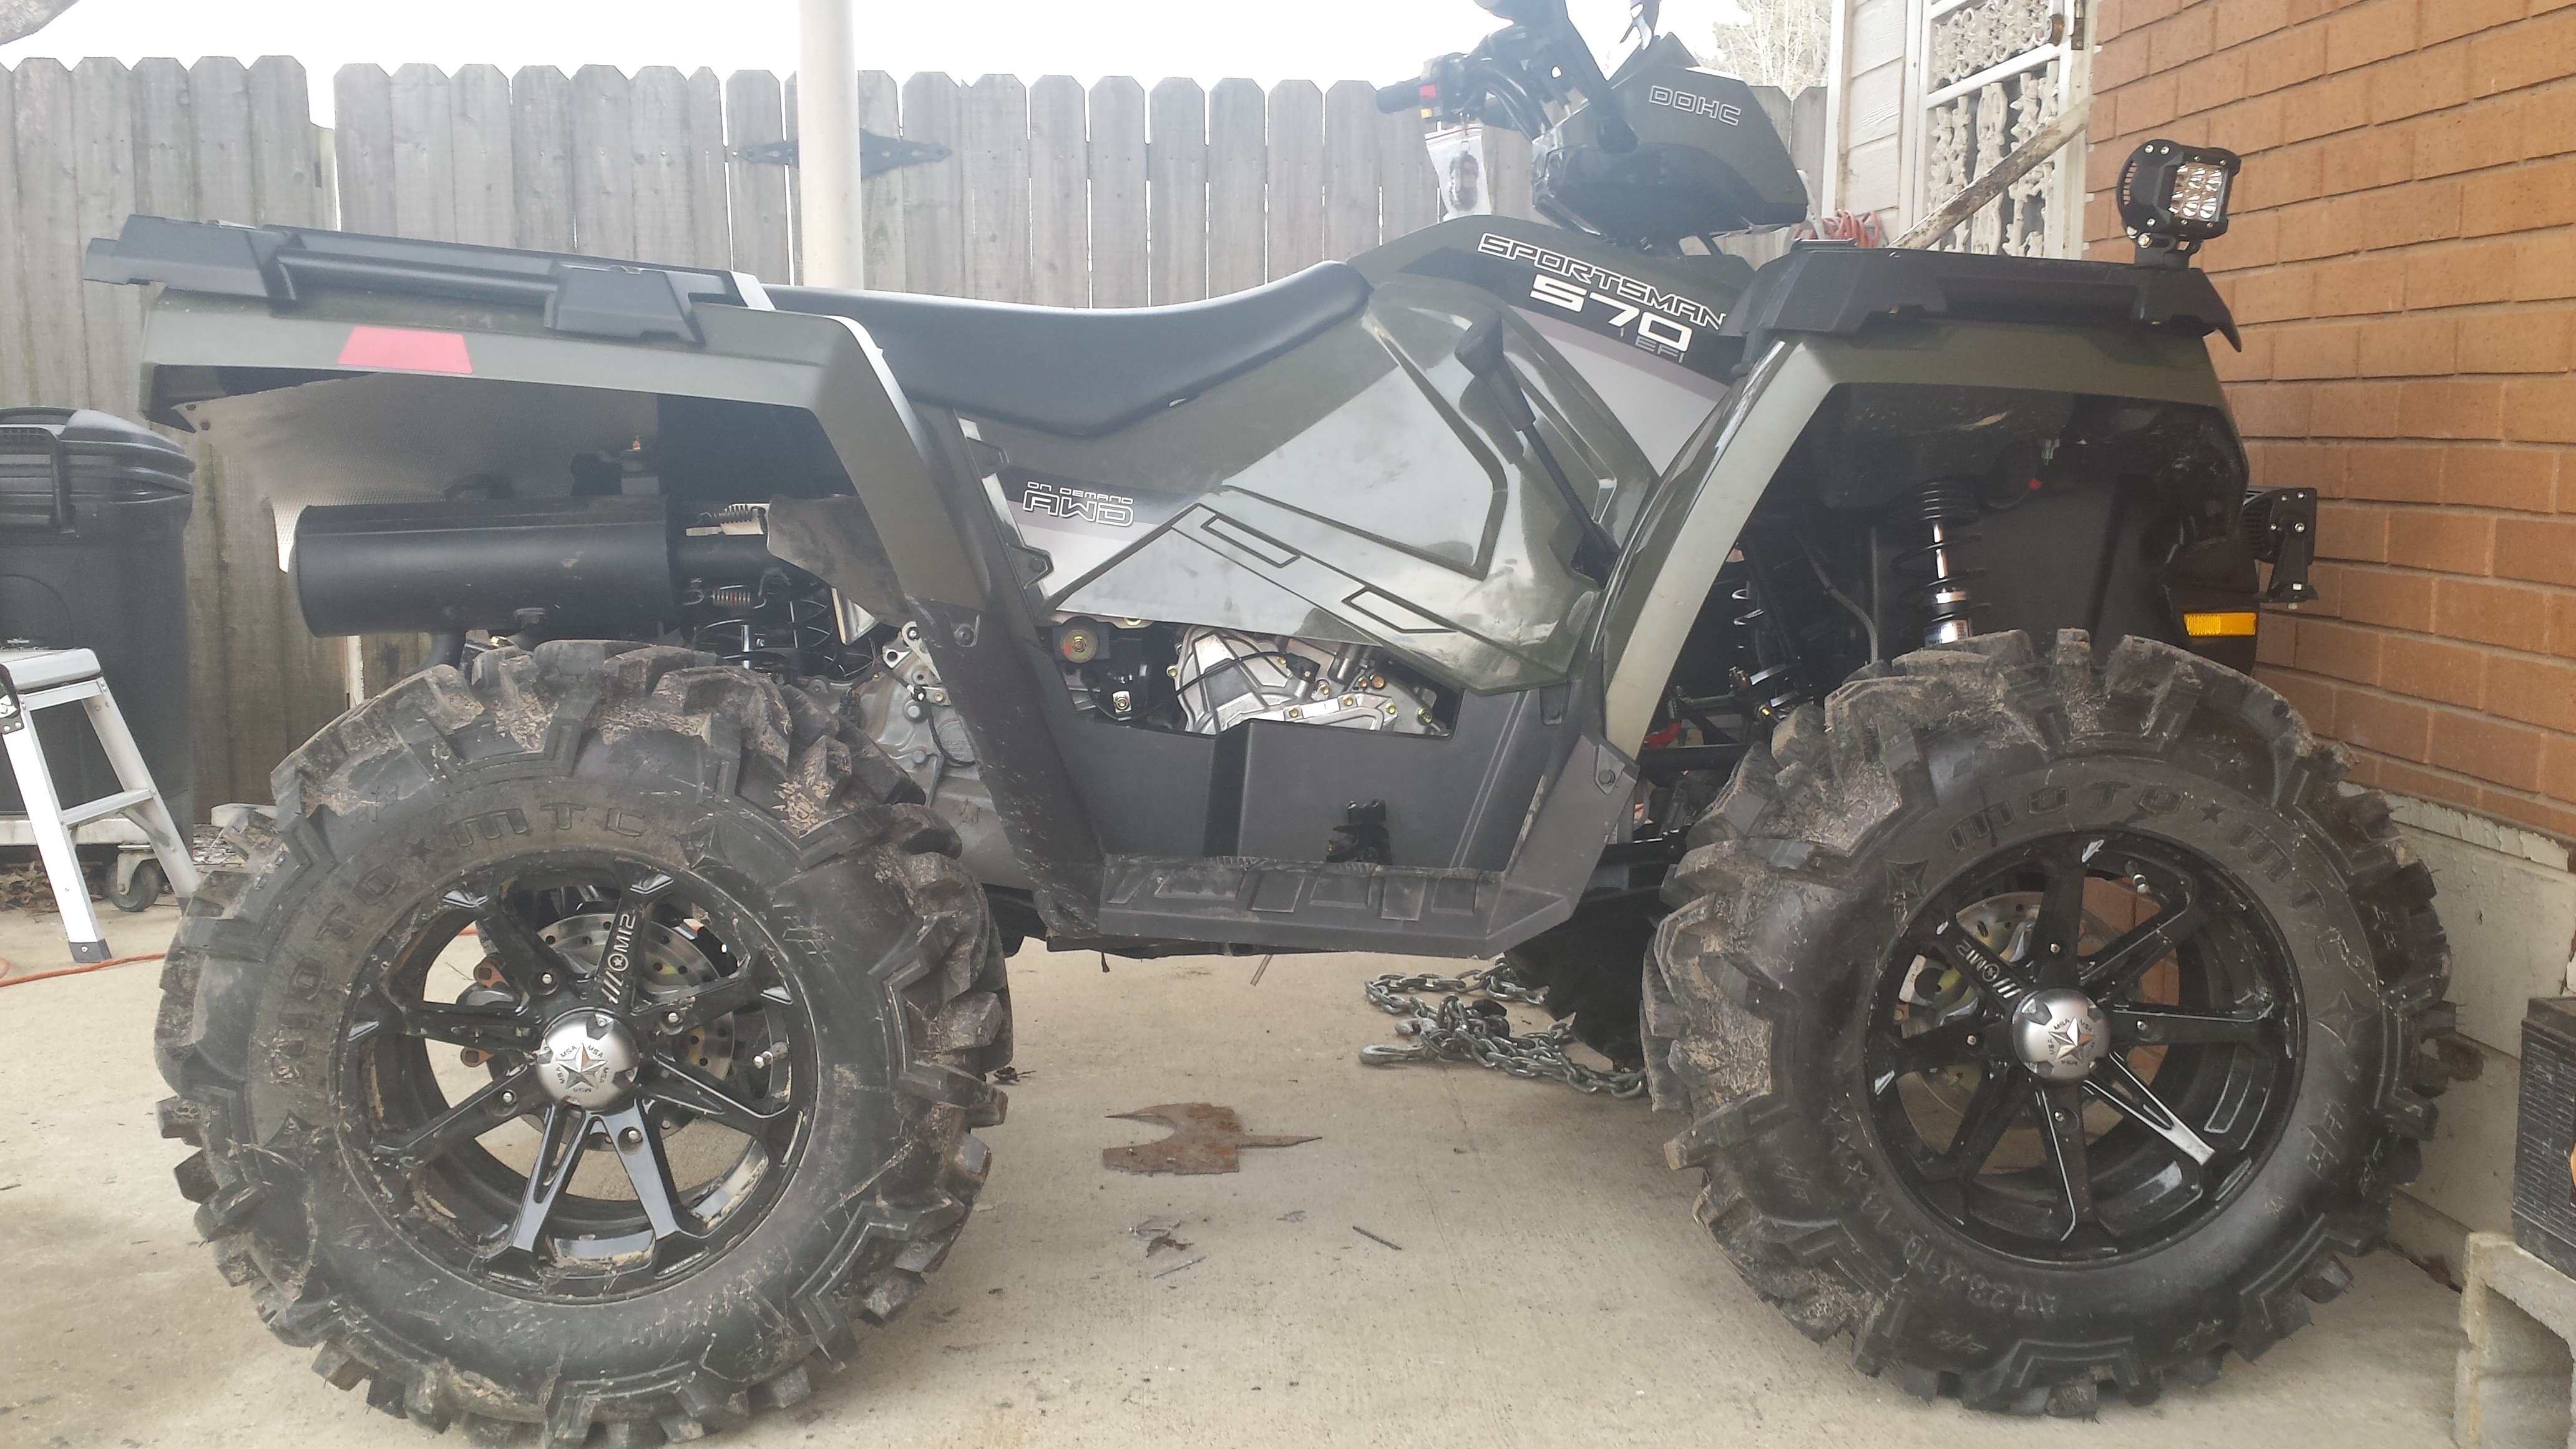 D Sportsman Mods as well D Predator Fan Troubles Img moreover D Polaris Fixin Up Need Some Help Hub Coil Connectors together with Hqdefault furthermore D Does Anyone Have Wiring Diagram Polaris Sportsman Edd C Faec Dc B Ca C. on polaris atv wiring diagram